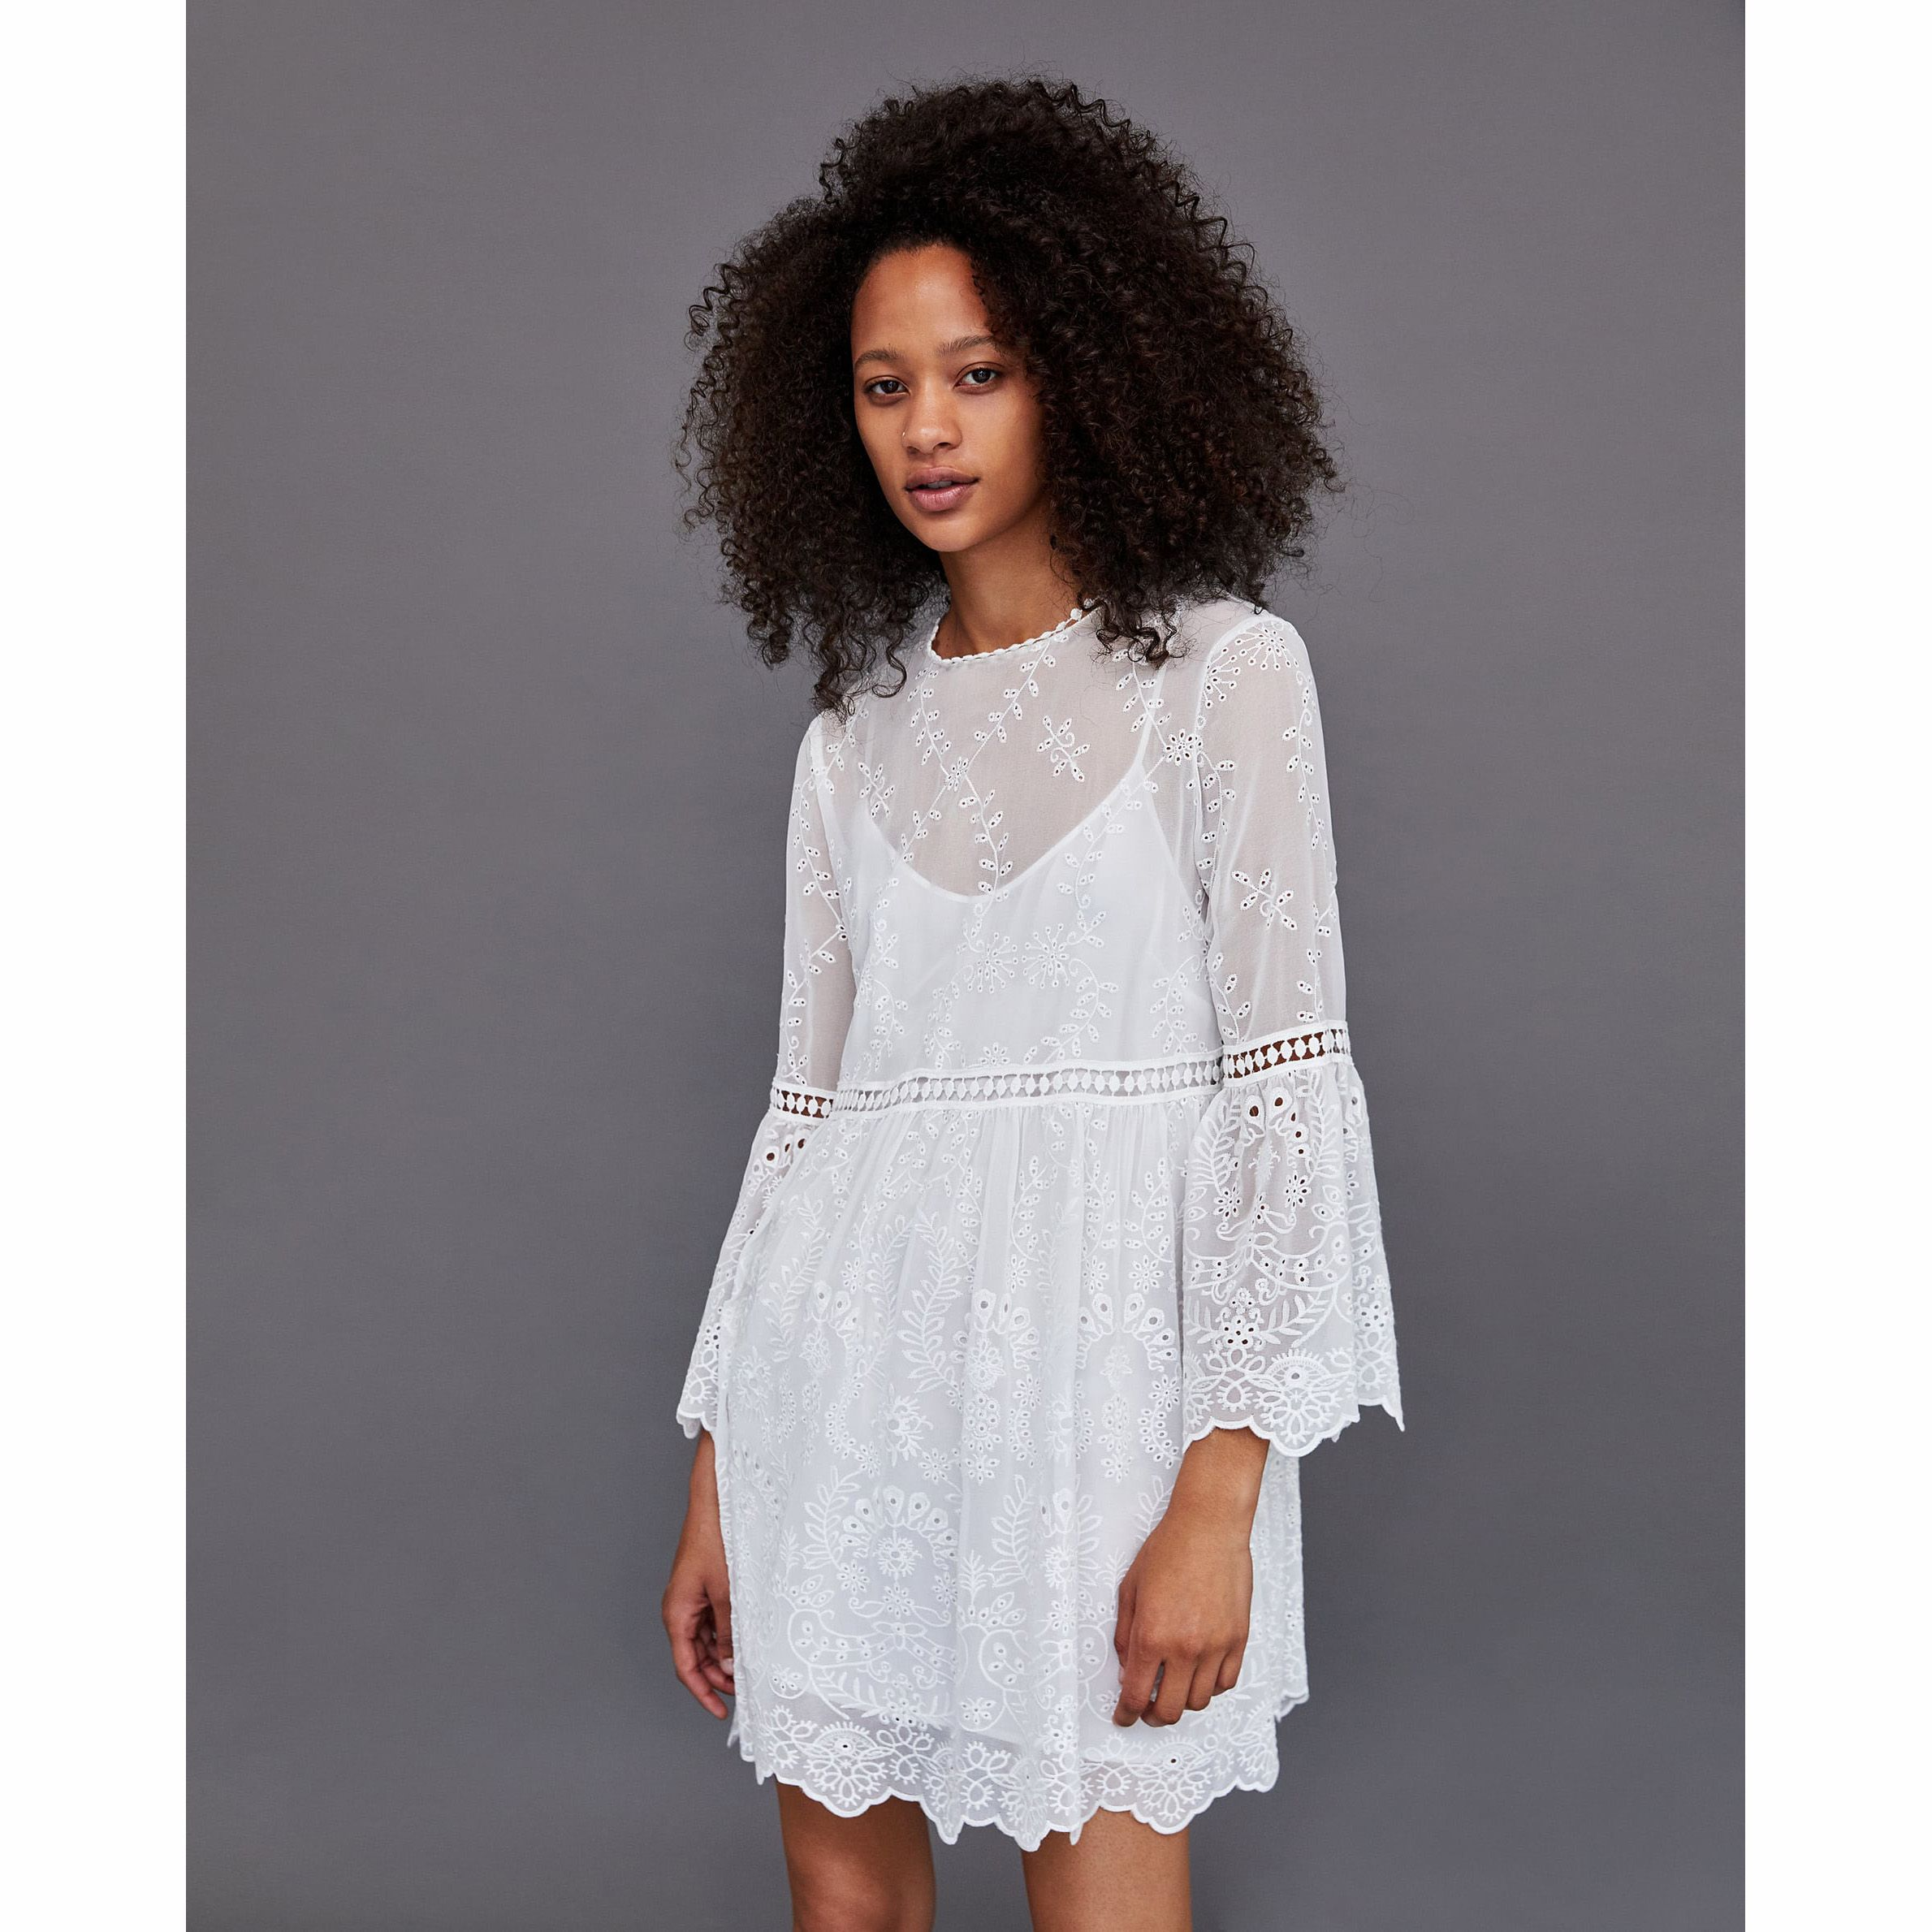 76627af580 White summer dresses - Perfect floaty dresses to wear in summer